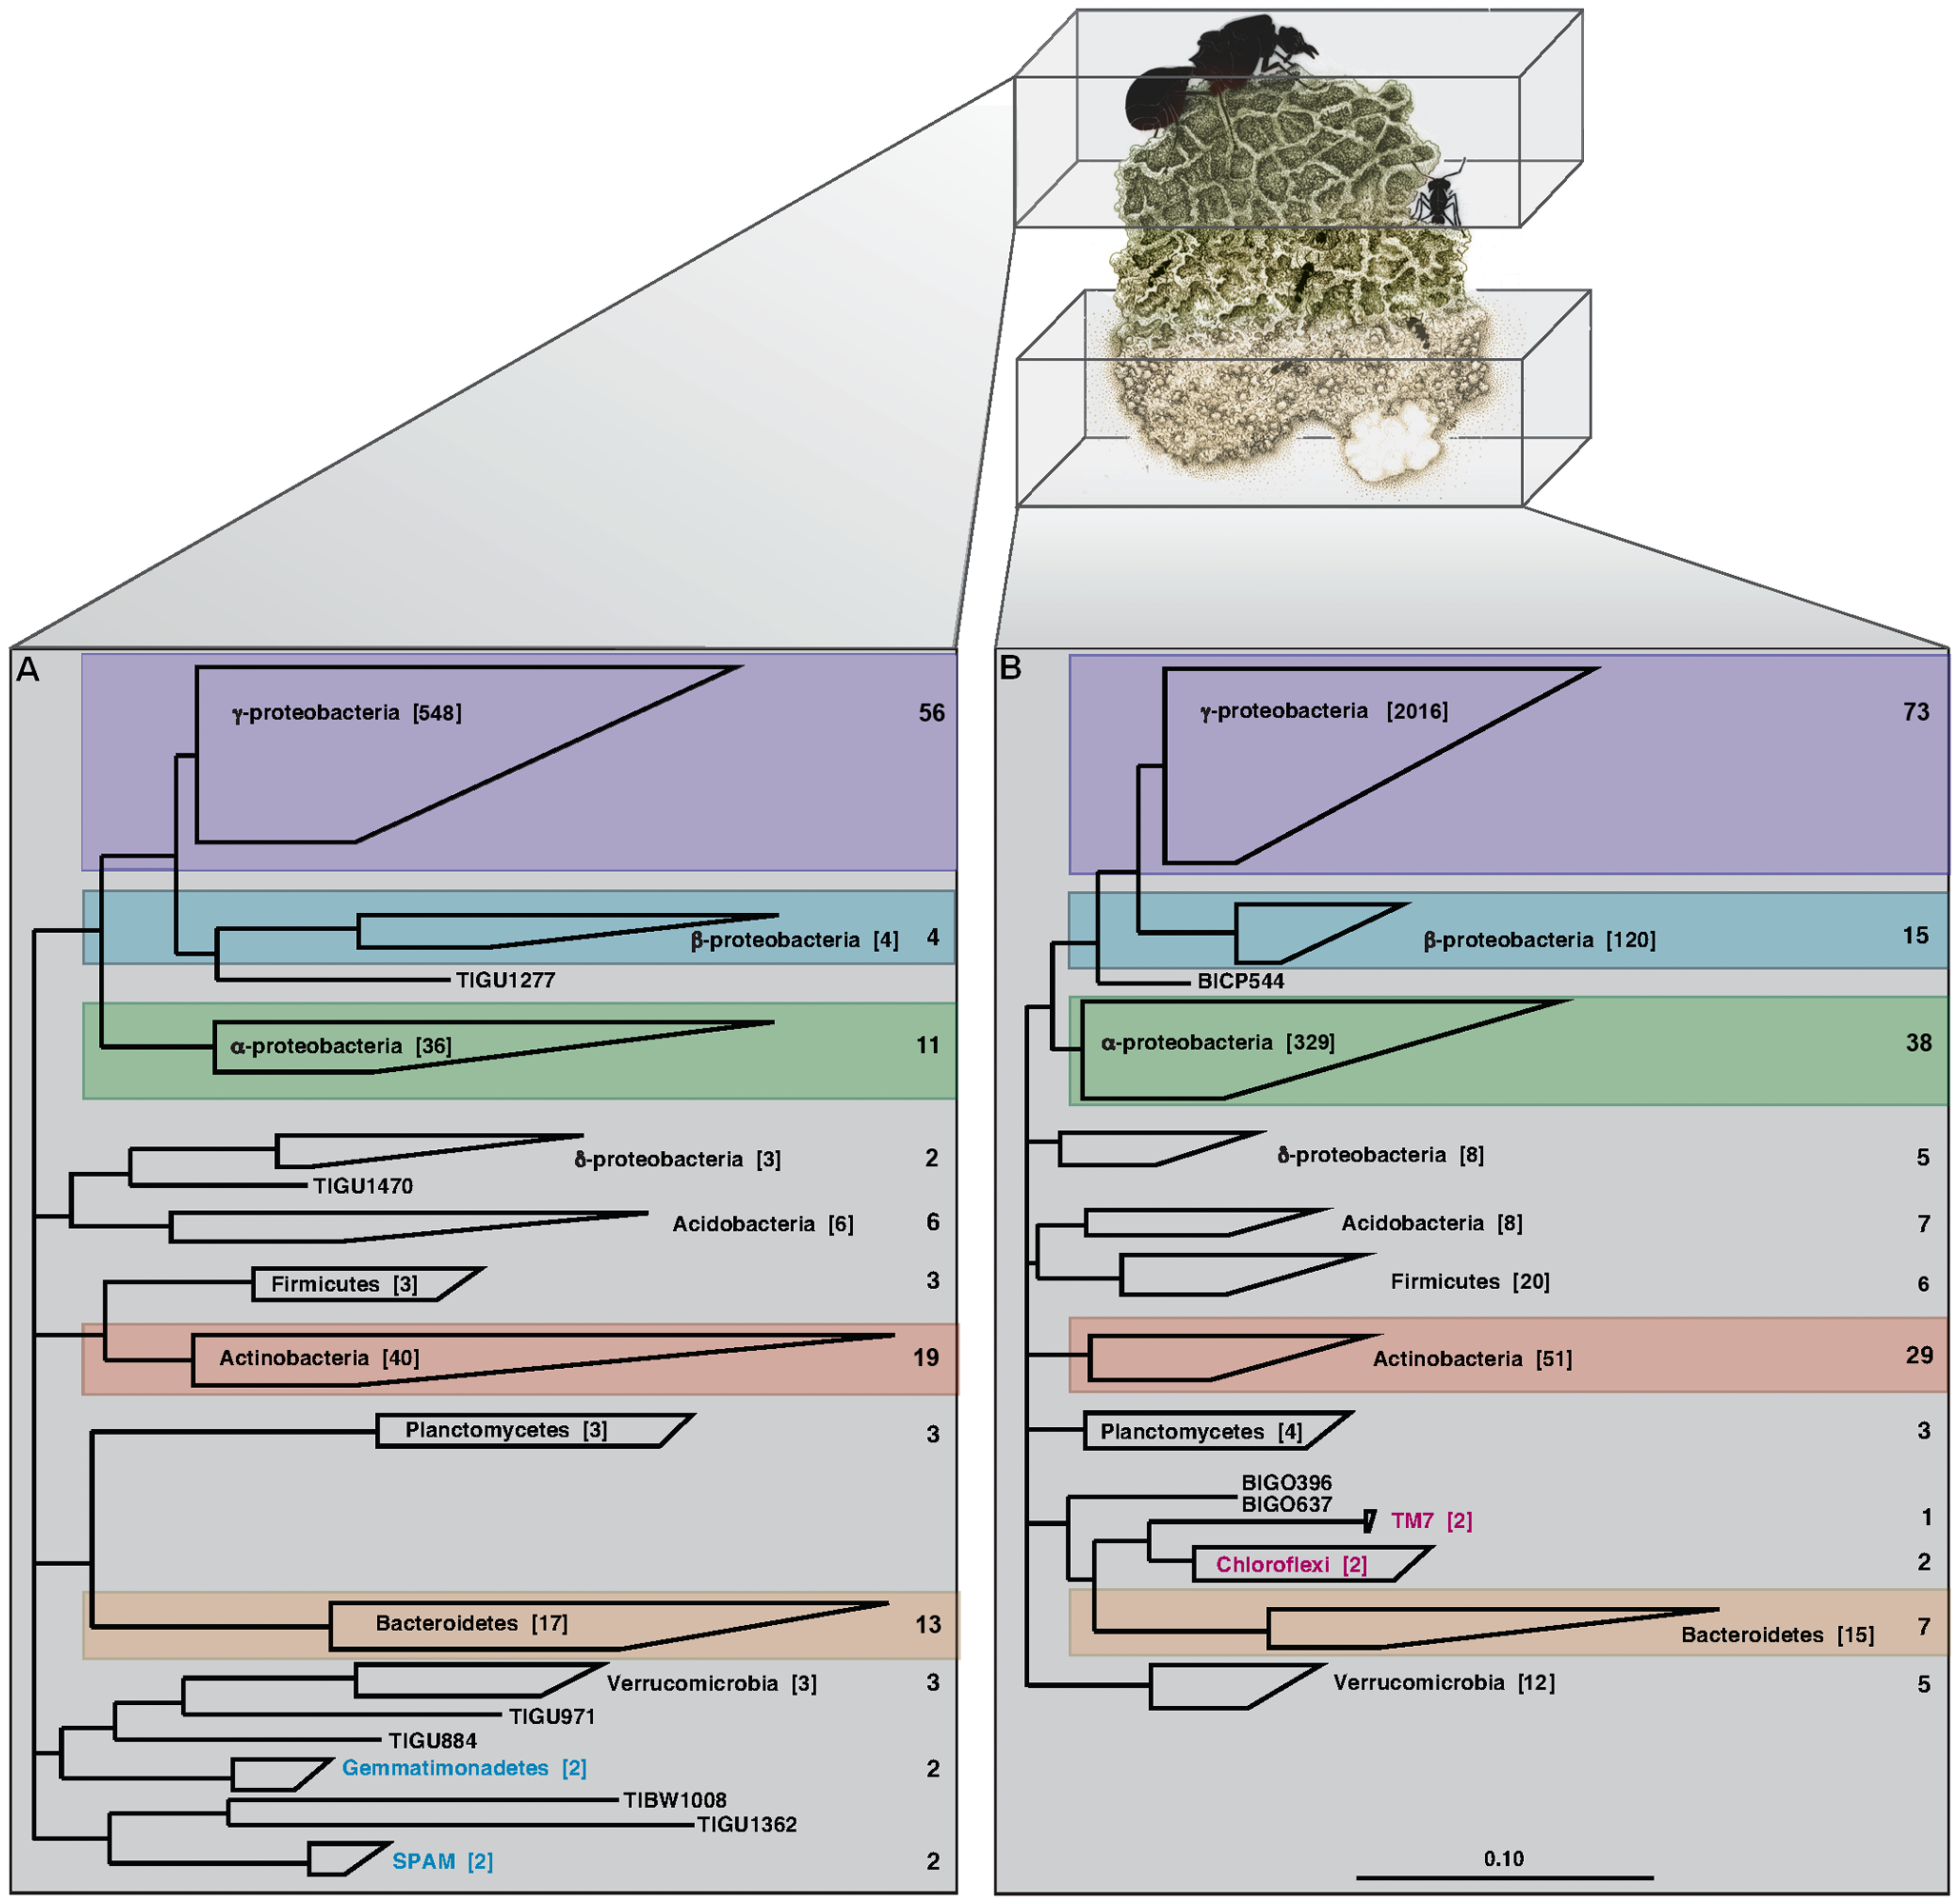 Phylogenetic analysis of the leaf-cutter ant fungus garden.